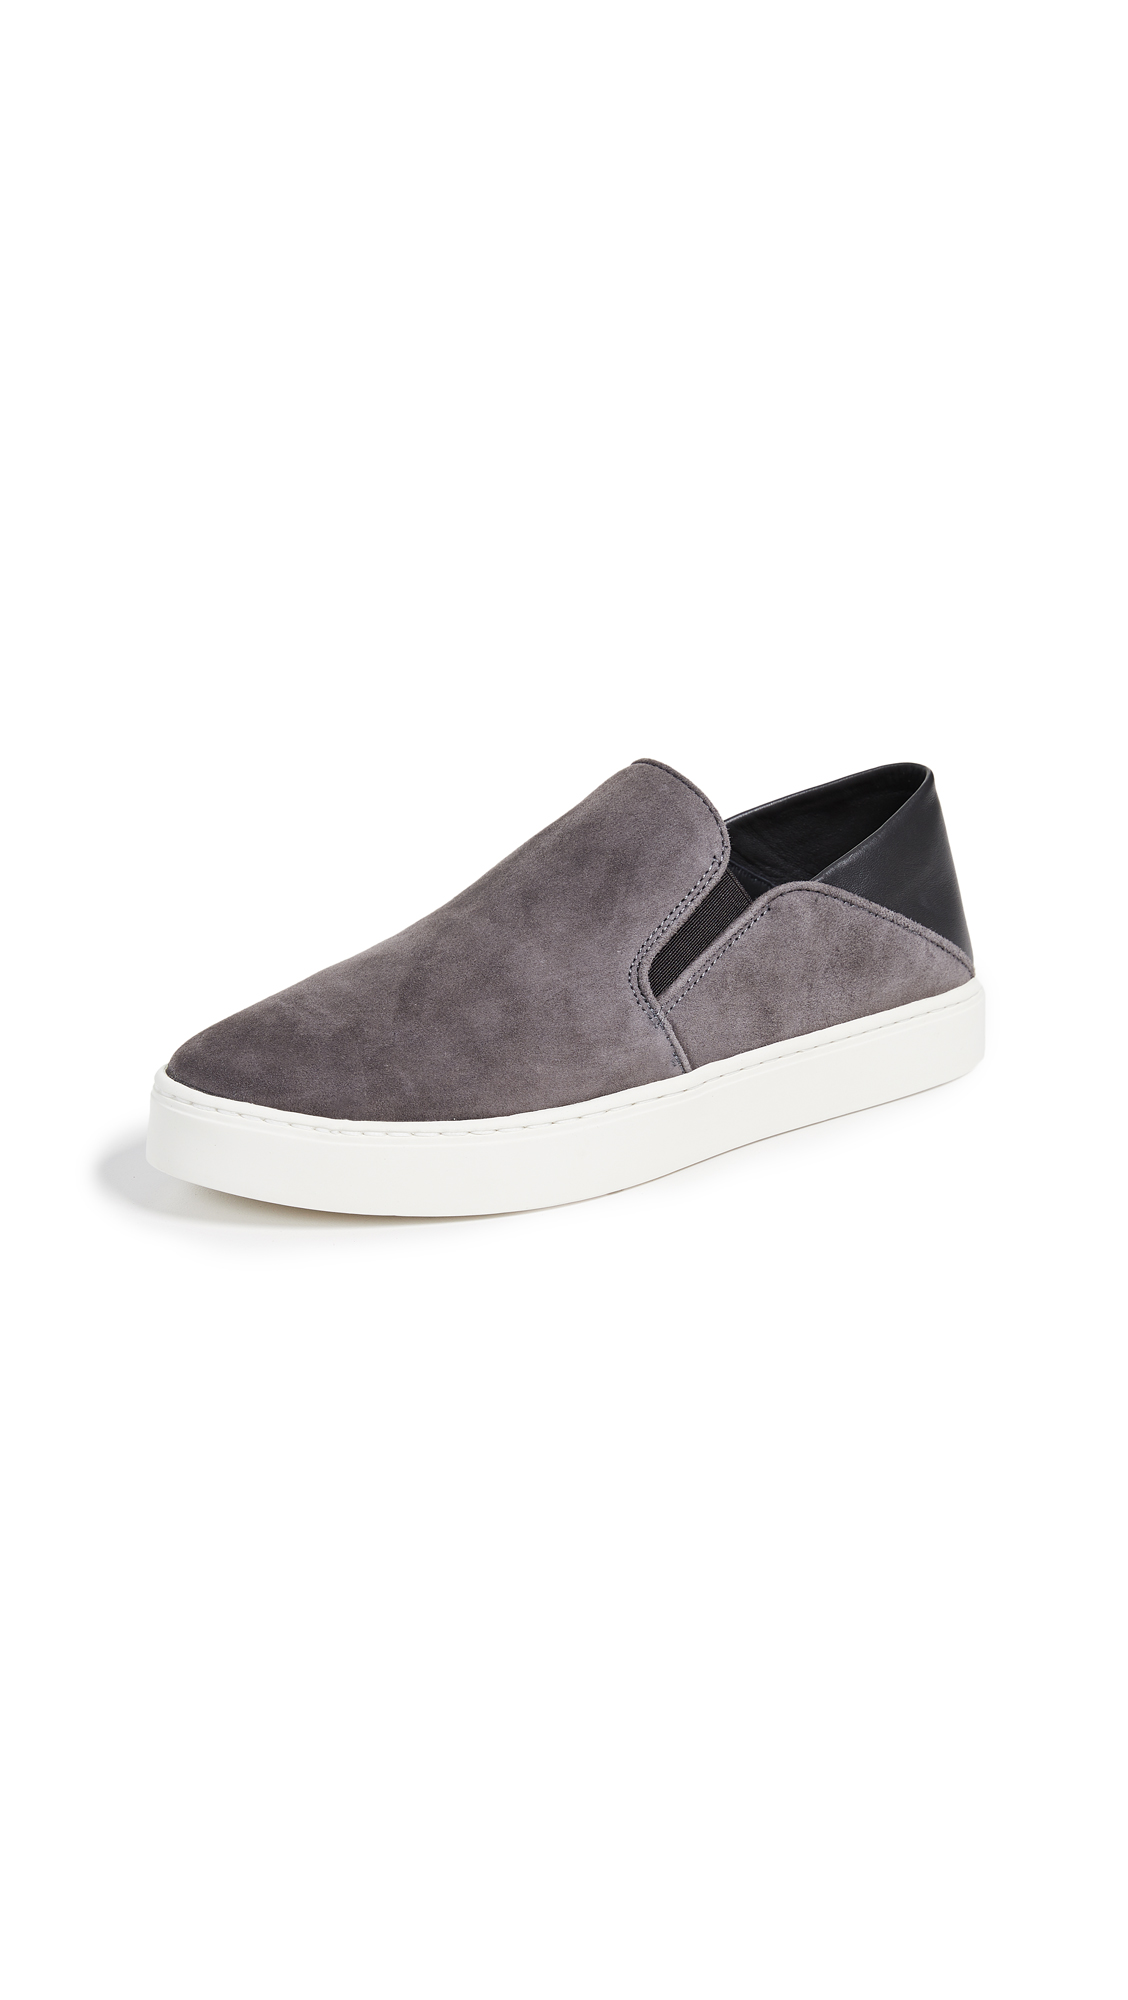 Vince Garvey Slip On Sneakers - Pewter